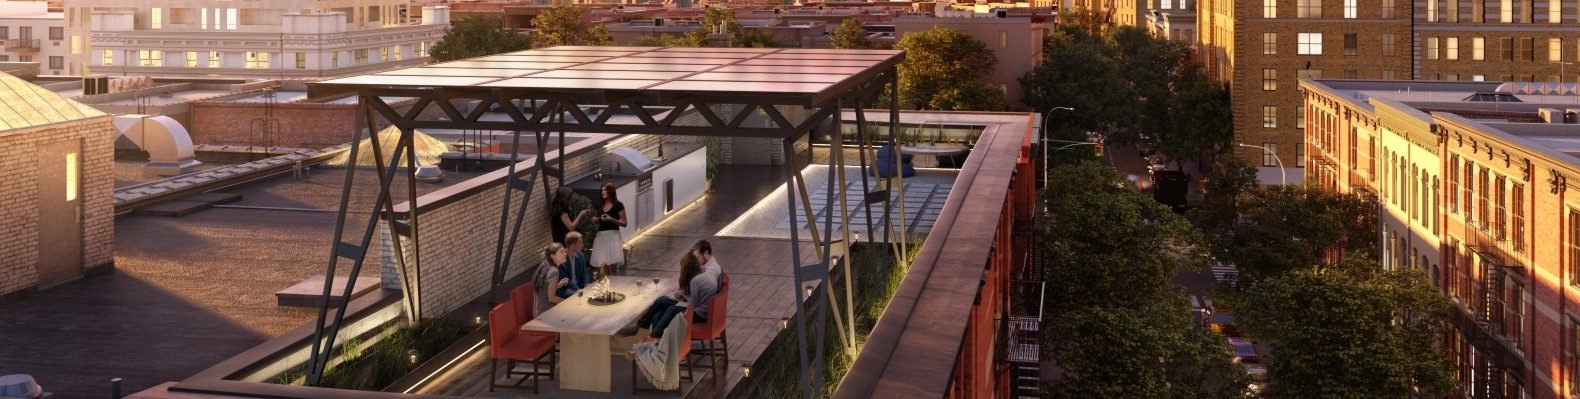 Rendering of the Solar Canopy, which is lofted above a rooftop dining area.